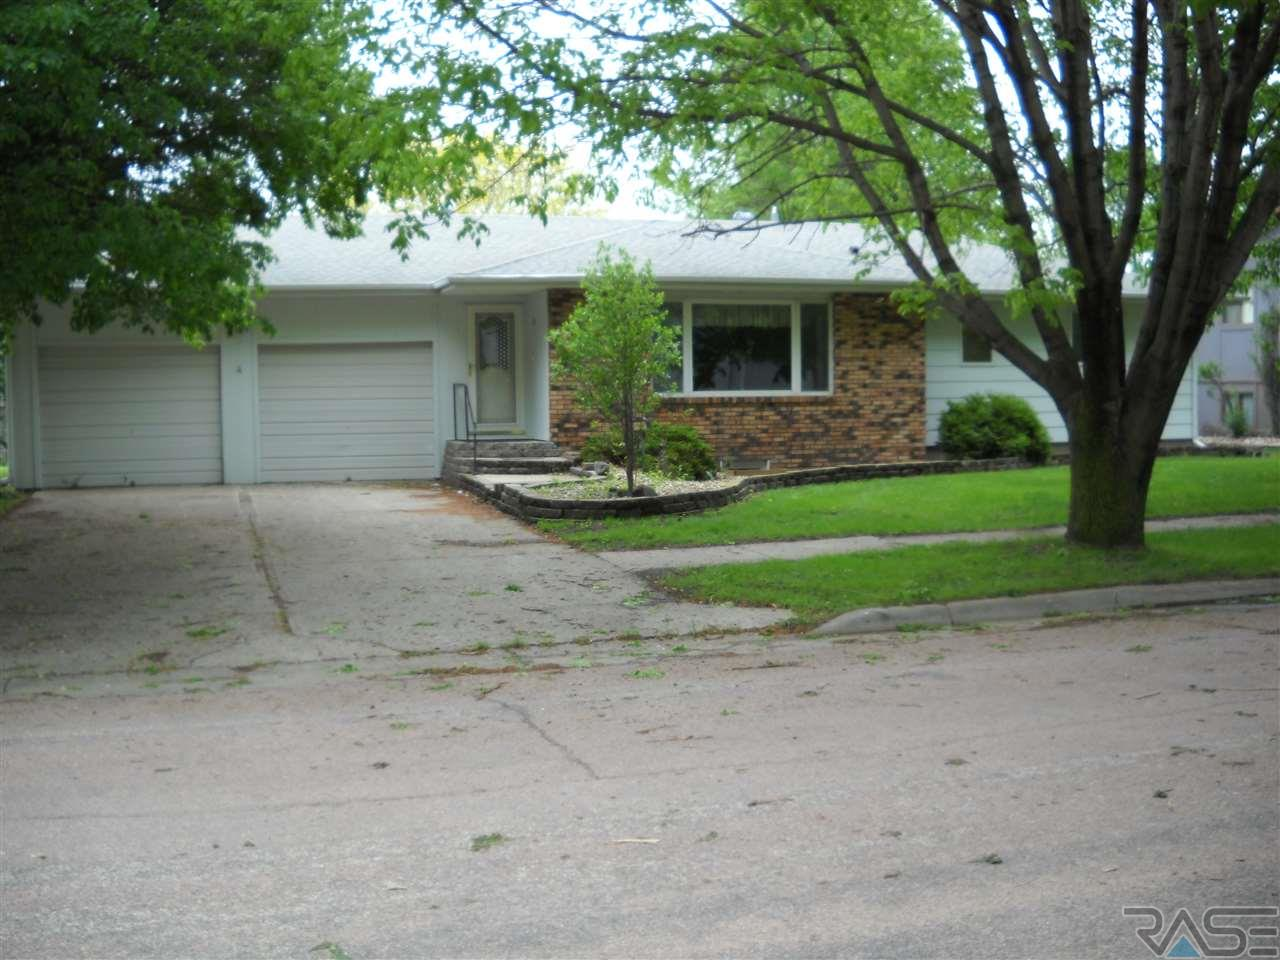 912 NE 9th St, Madison, SD 57042